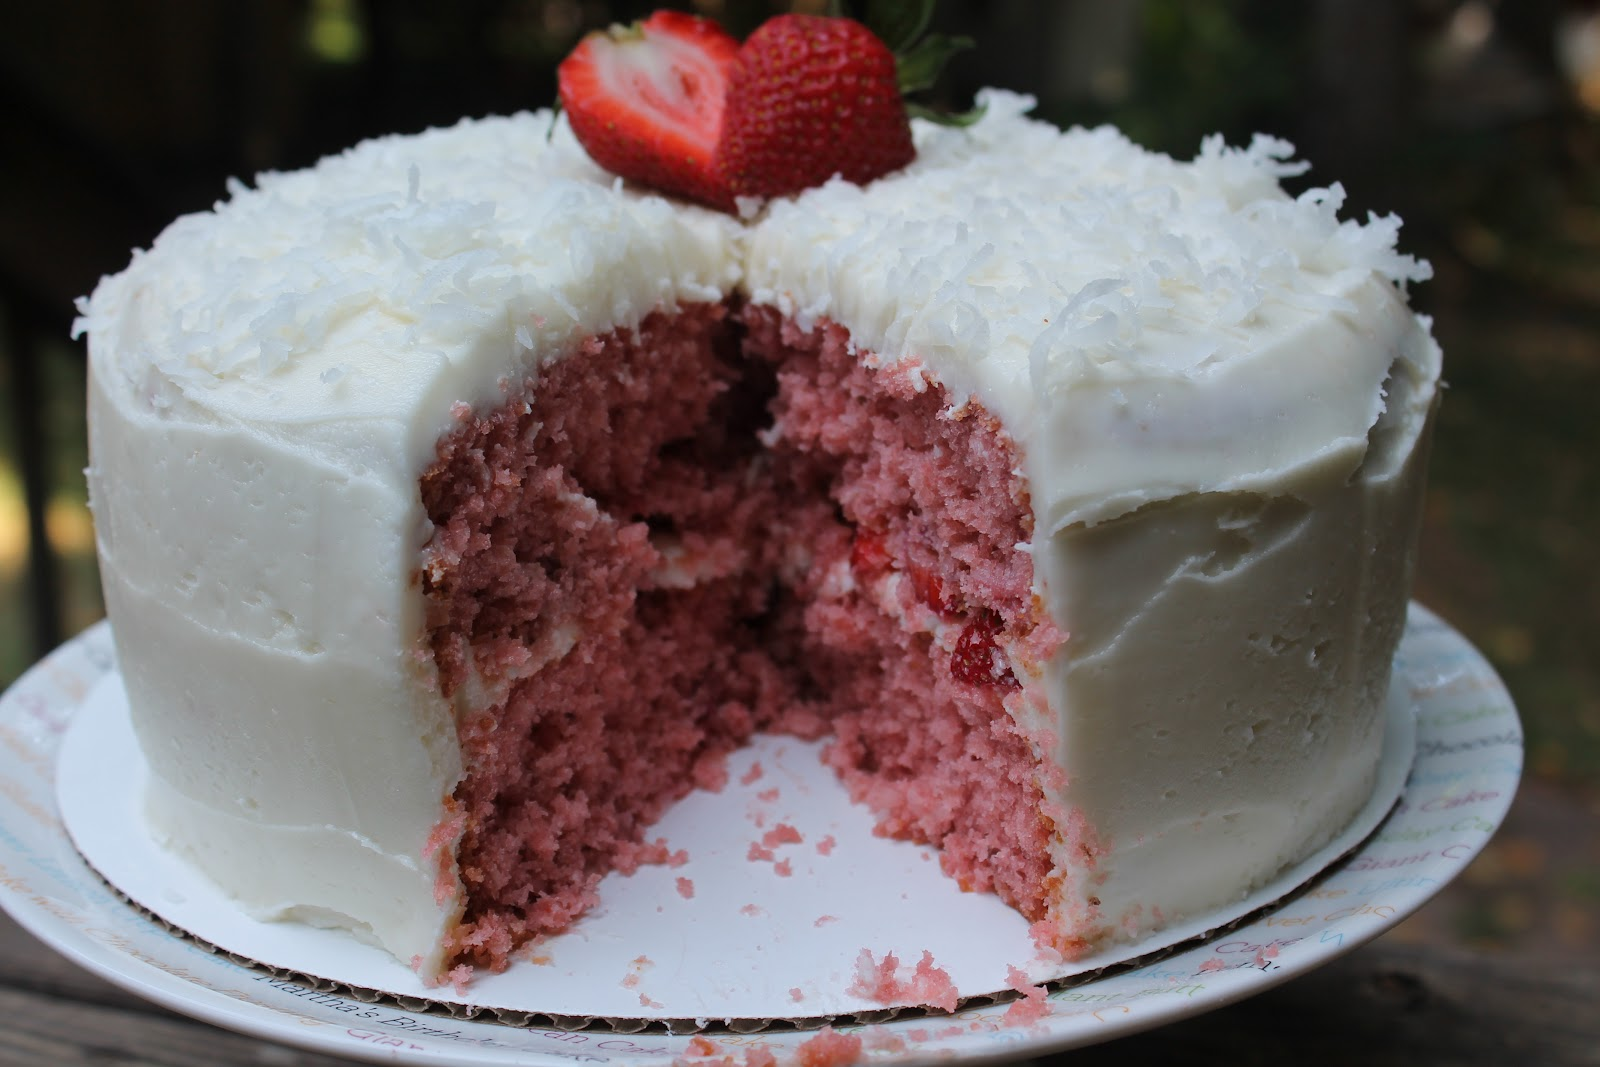 ... . It is super moist, fresh and flavorful - the perfect summer cake